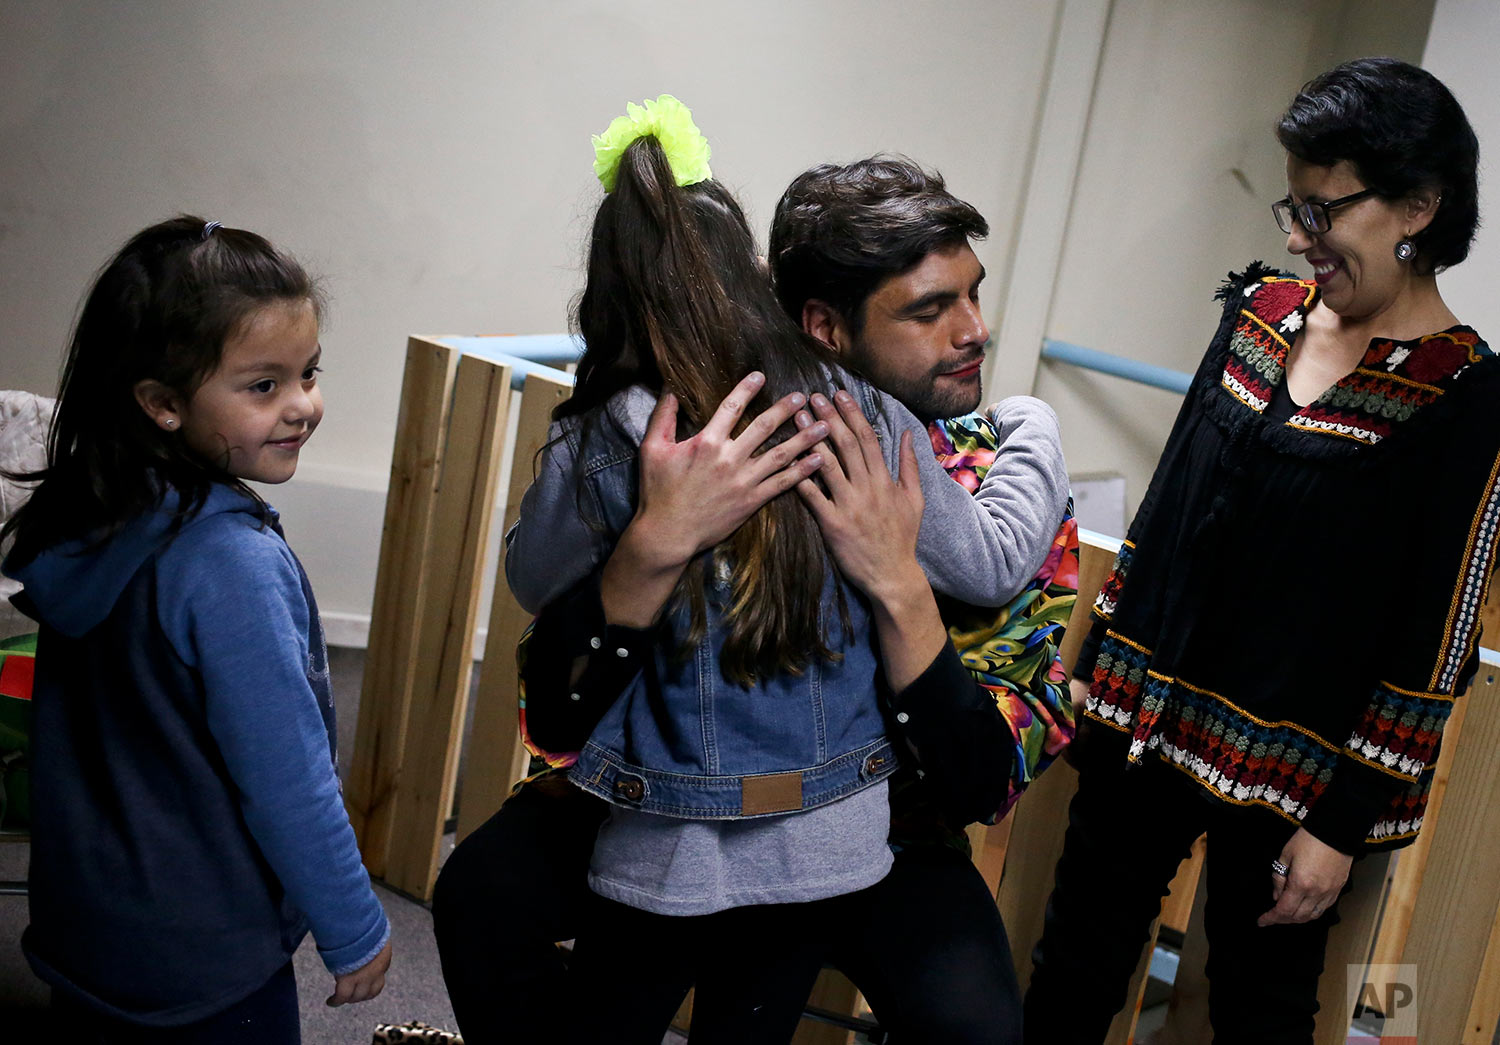 In this July 8, 2017 photo, transgender girl Selenna embraces a storyteller at the end of his reading as her transgender friend Mathilda stands by, at a bookshop in Santiago, Chile. The story teller, who is also a drag queen, told stories that touched on the themes of inclusion and identity diversity. (AP Photo/Esteban Felix)